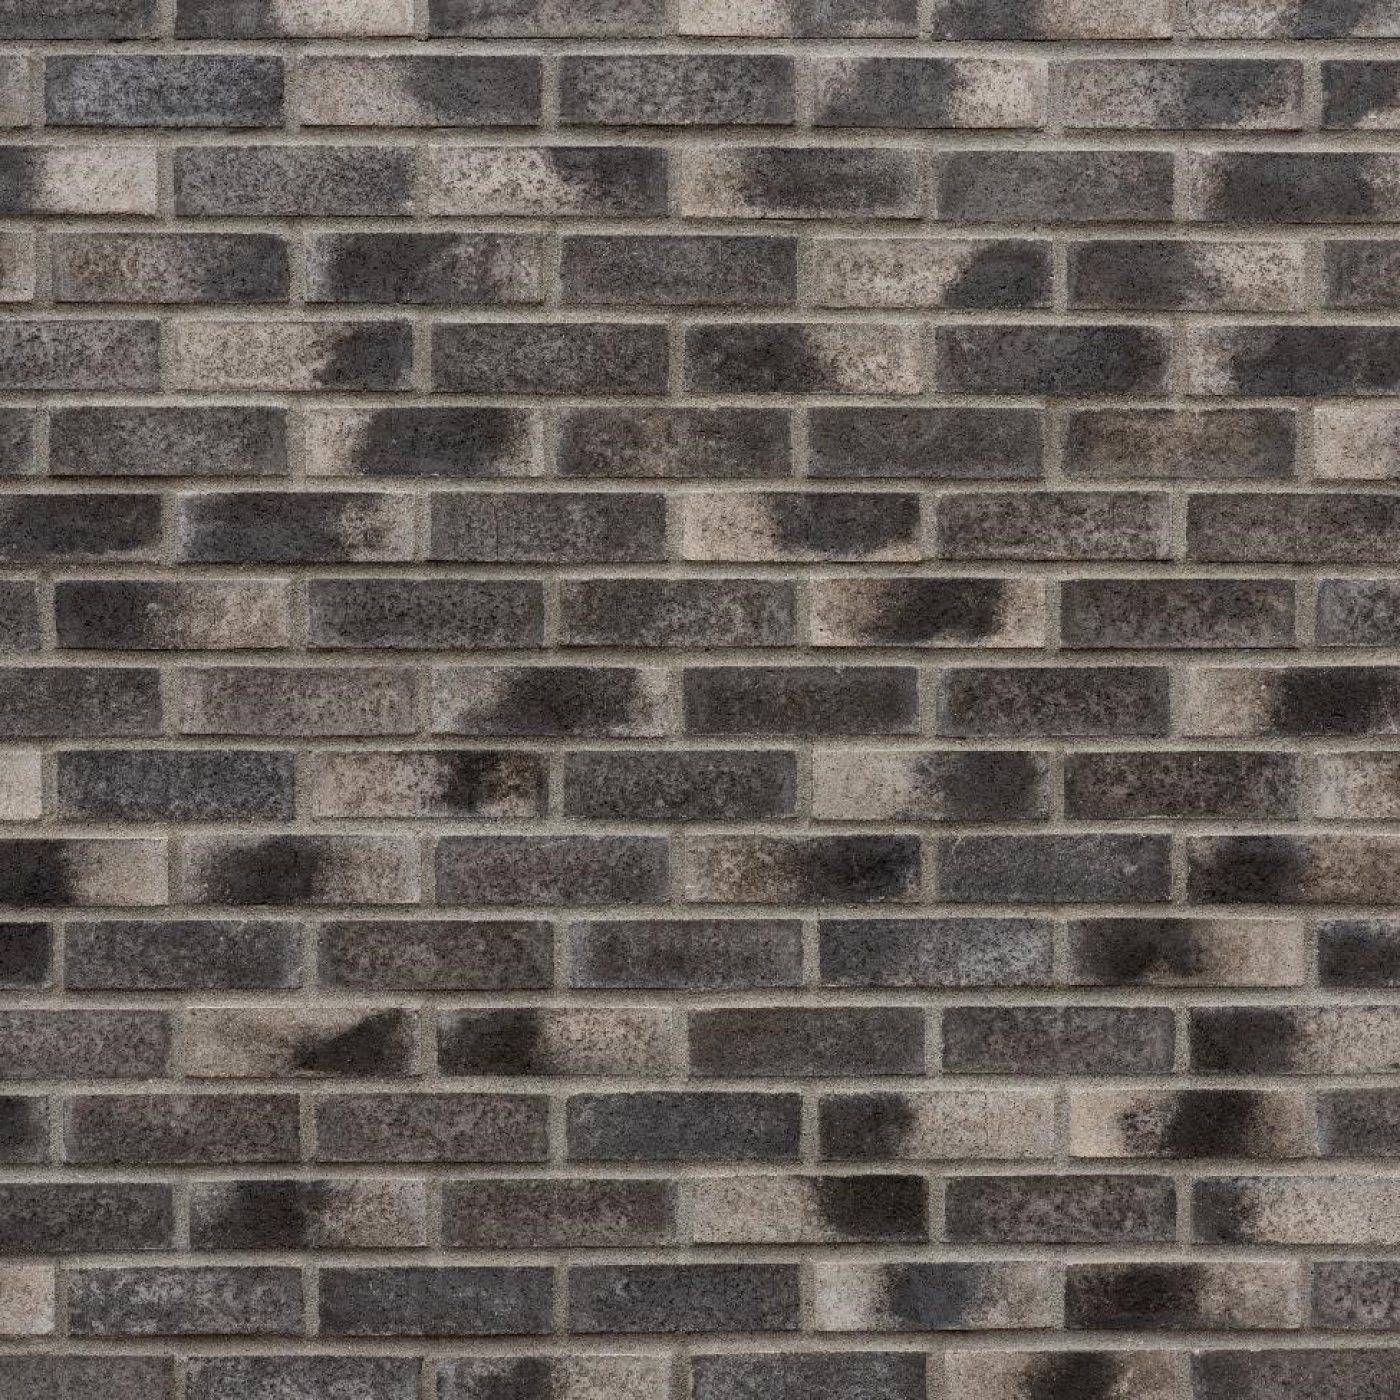 Cannon Clean Brick Stone Veneer from Environmental StoneWorks